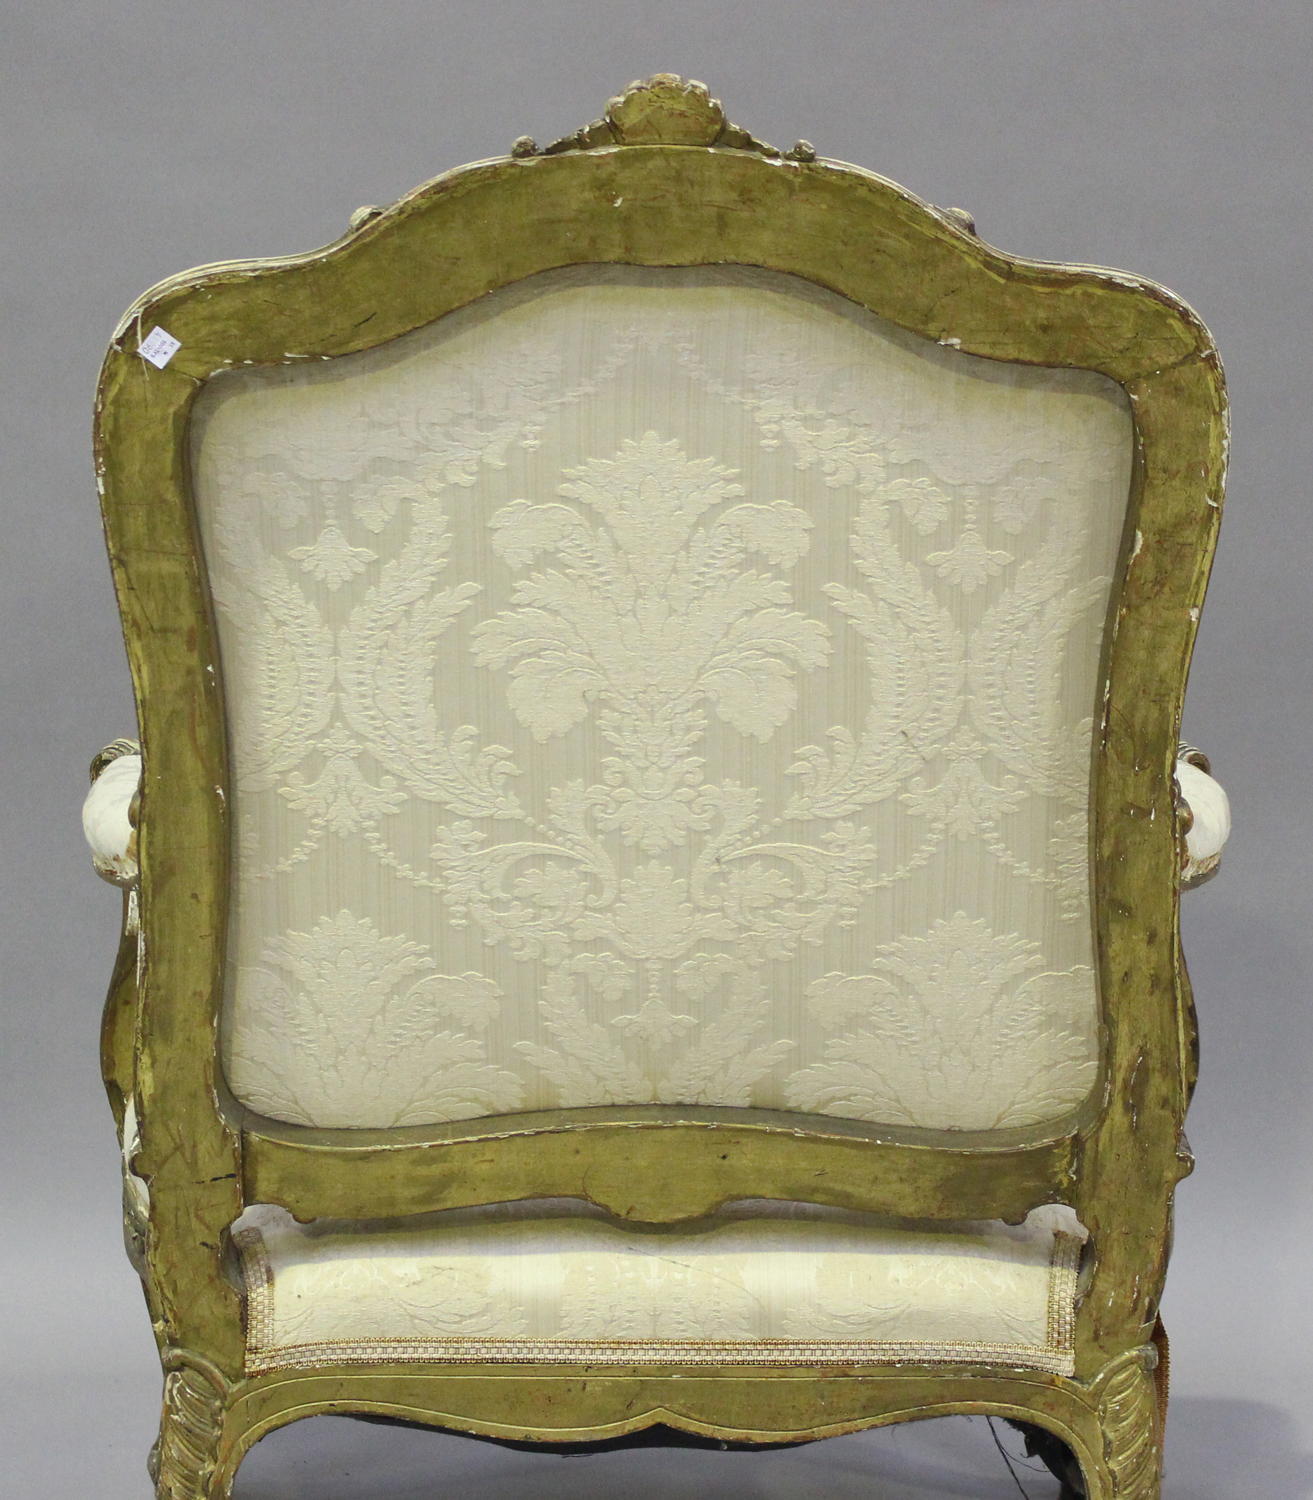 A 19th century French giltwood showframe fauteuil armchair with carved scroll decoration, on - Image 3 of 10